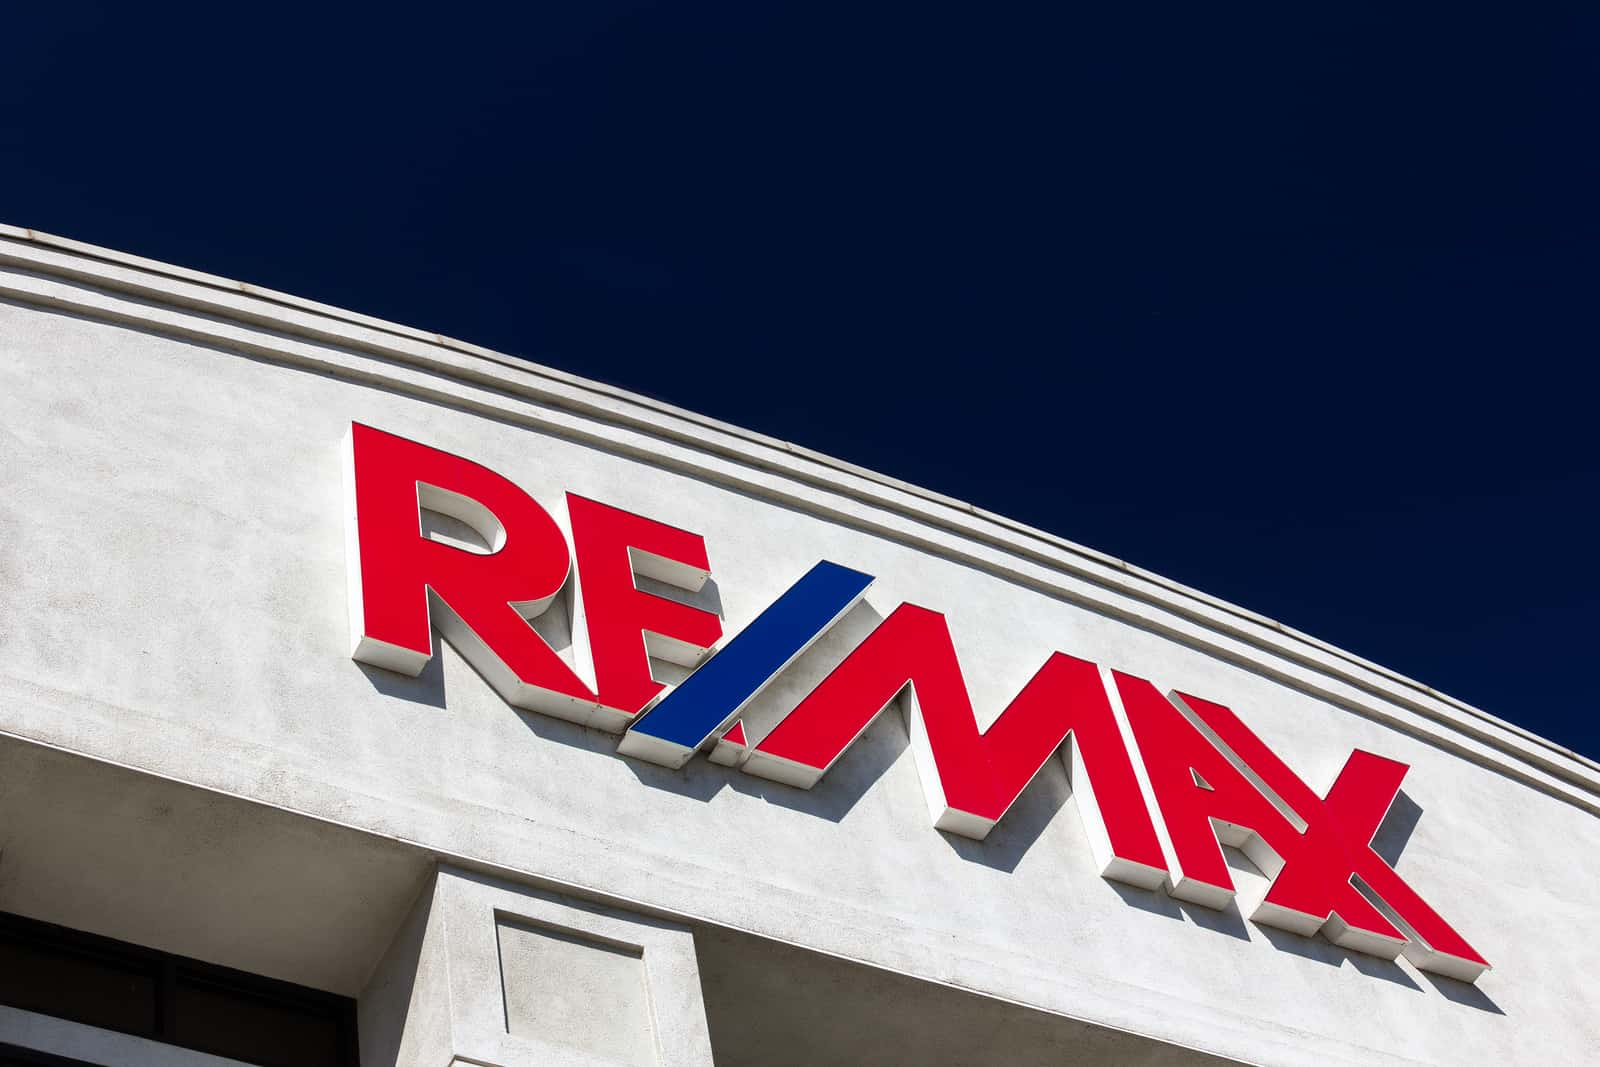 Familiar Factors Yield Stronger February Home Sale Results for Chicago-Area, RE/MAX Reports